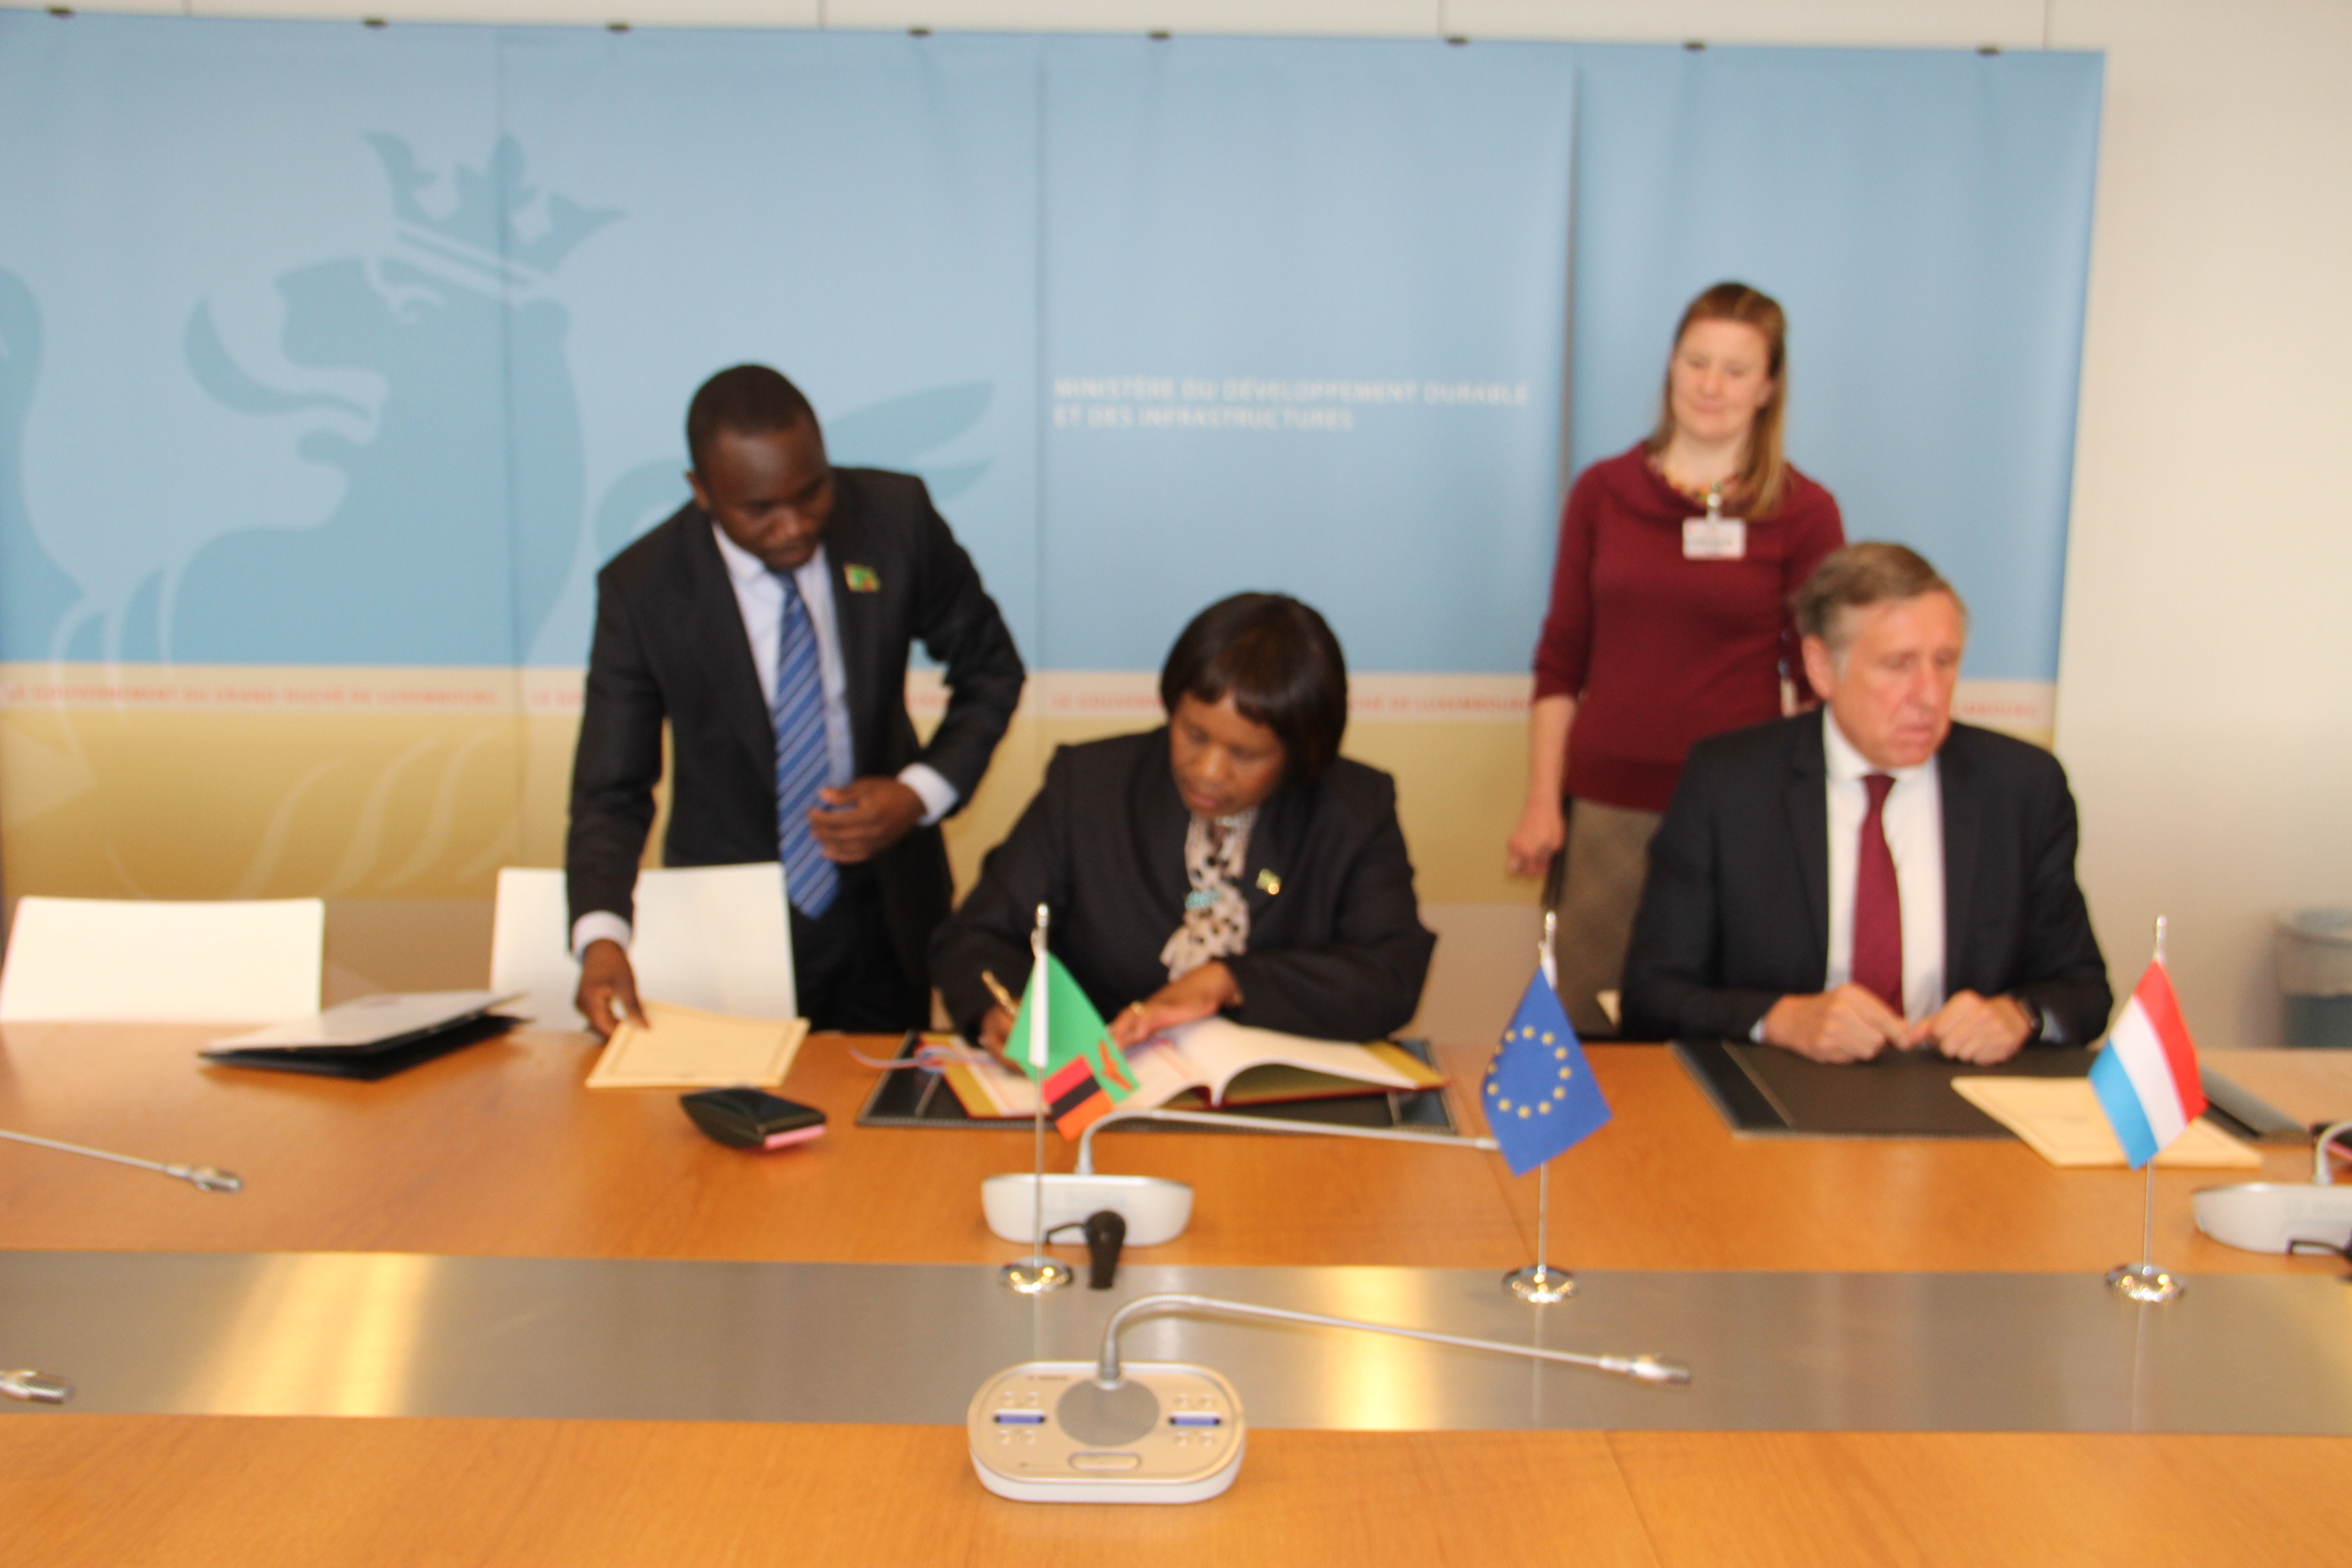 http://zebru.org/images/h.e%20ambassador%20kabwe%20%20her%20luxembourg%20counterpart%20mr%20bausch%20signing%20the%20bilateral%20air%20service%20agreement%20in%20luxembourg.jpg